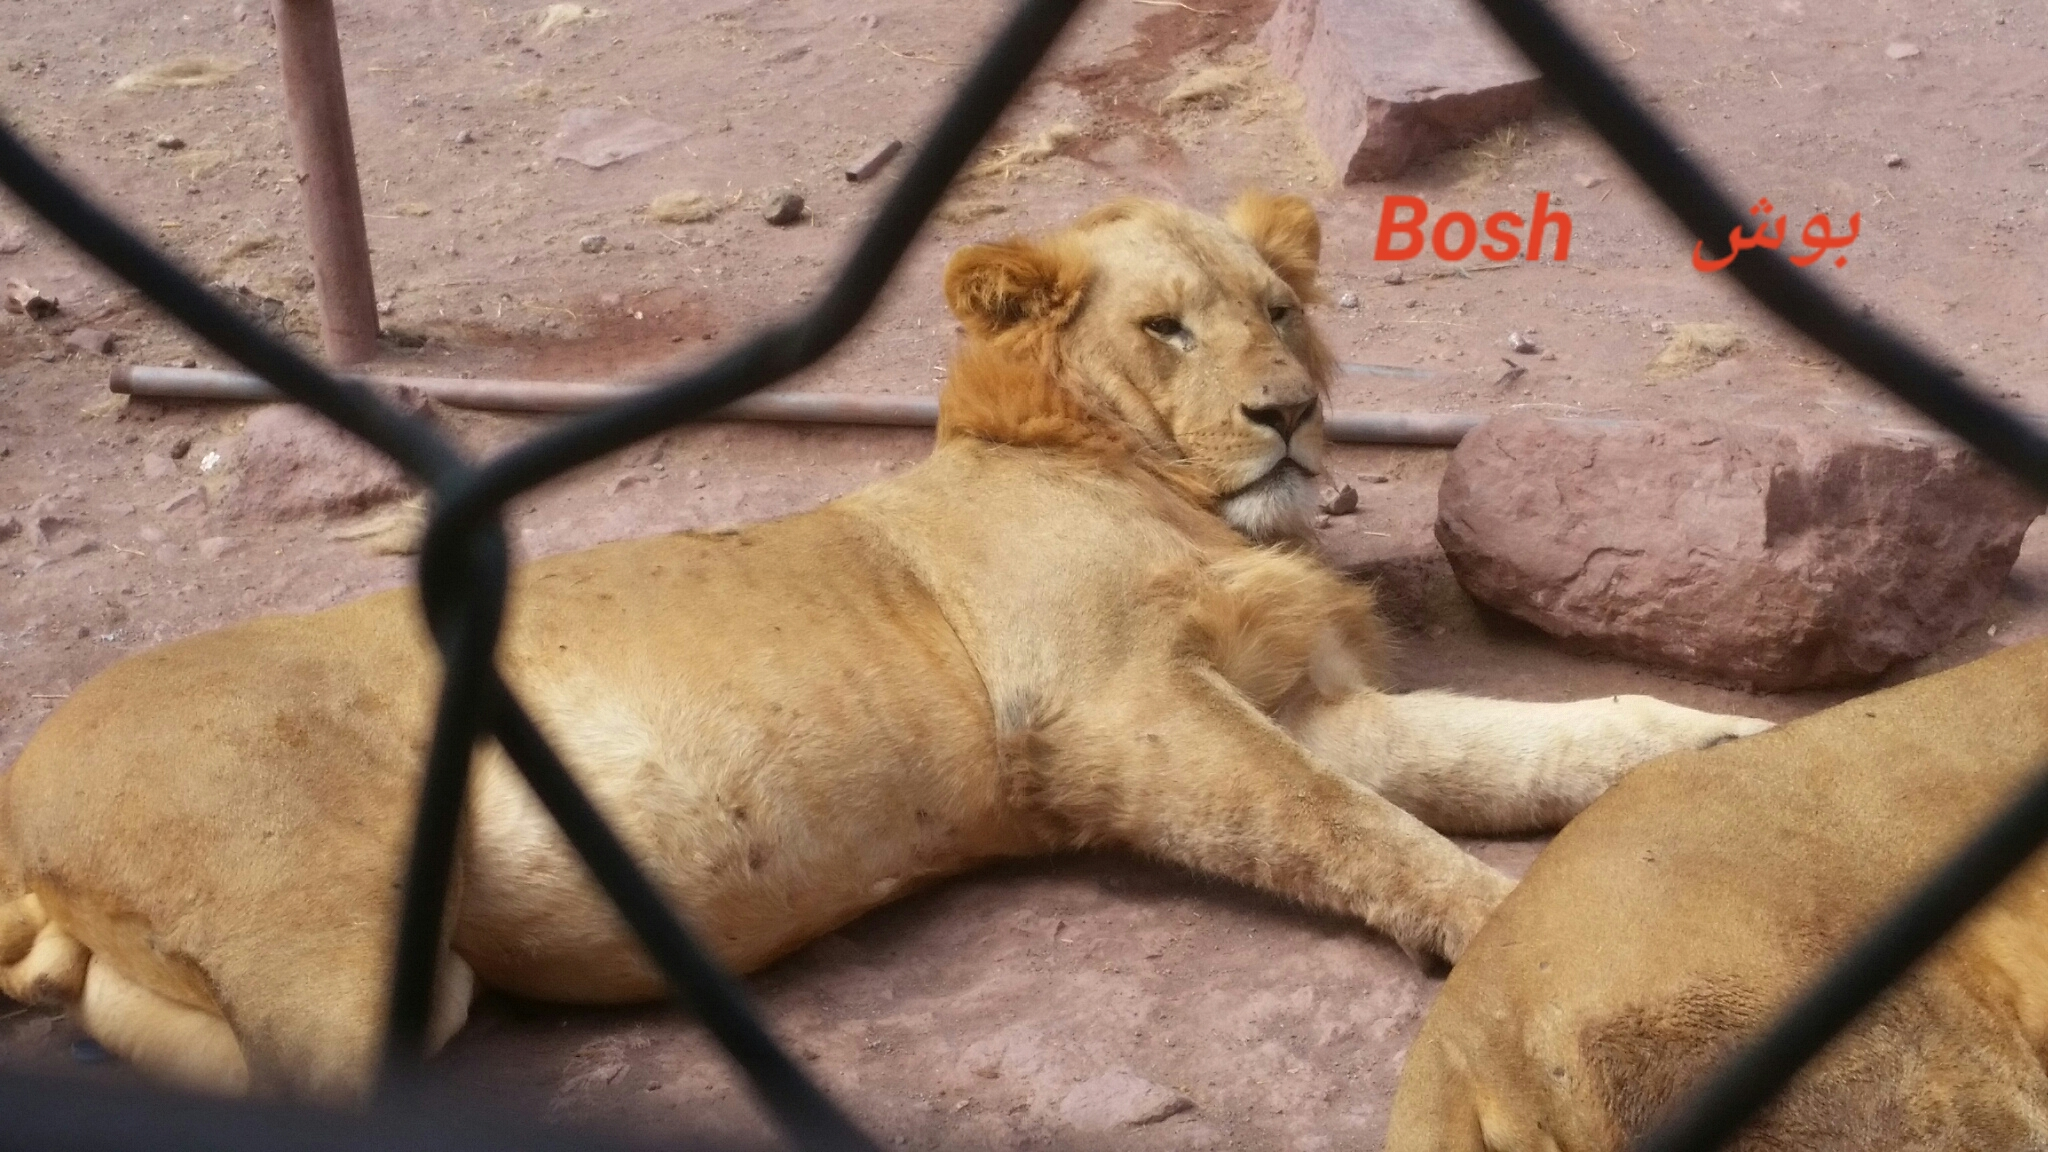 IBB ZOO BOSH lion full after his feed today 7 NOV 2018 by OWAP R provider Hisham pic yemen rescue.jpg